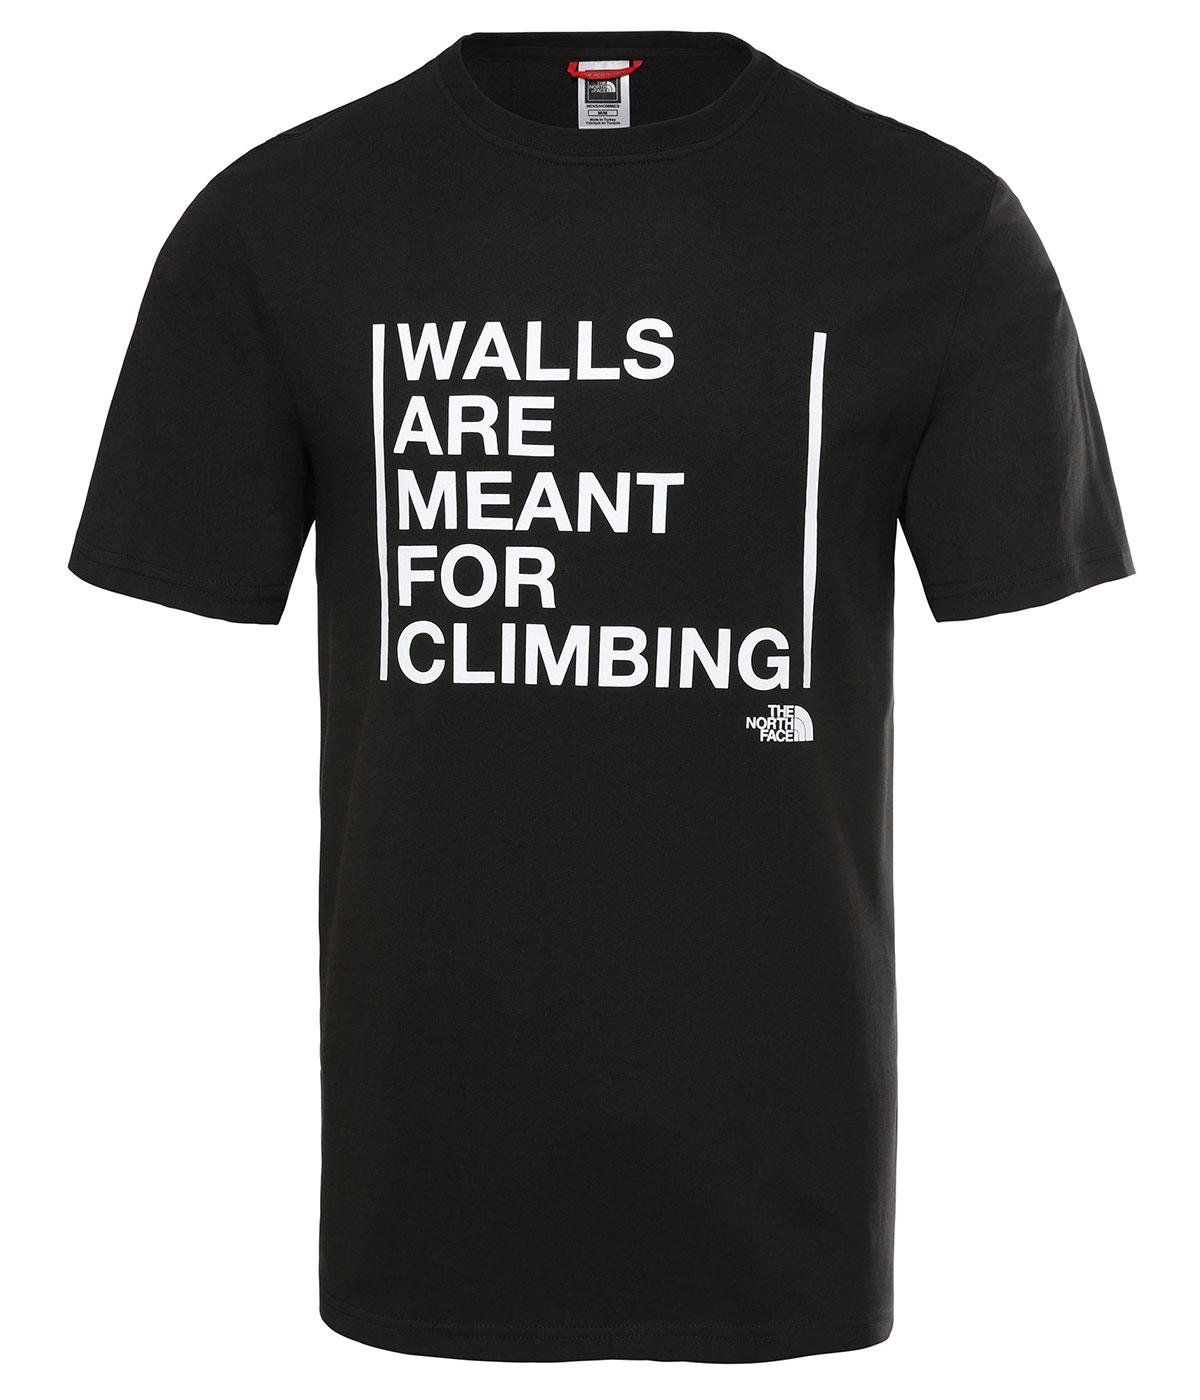 The Northface Erkek S/S WALLS ARE FOR CLIMBING TEE-EU NF0A3S3SJK31